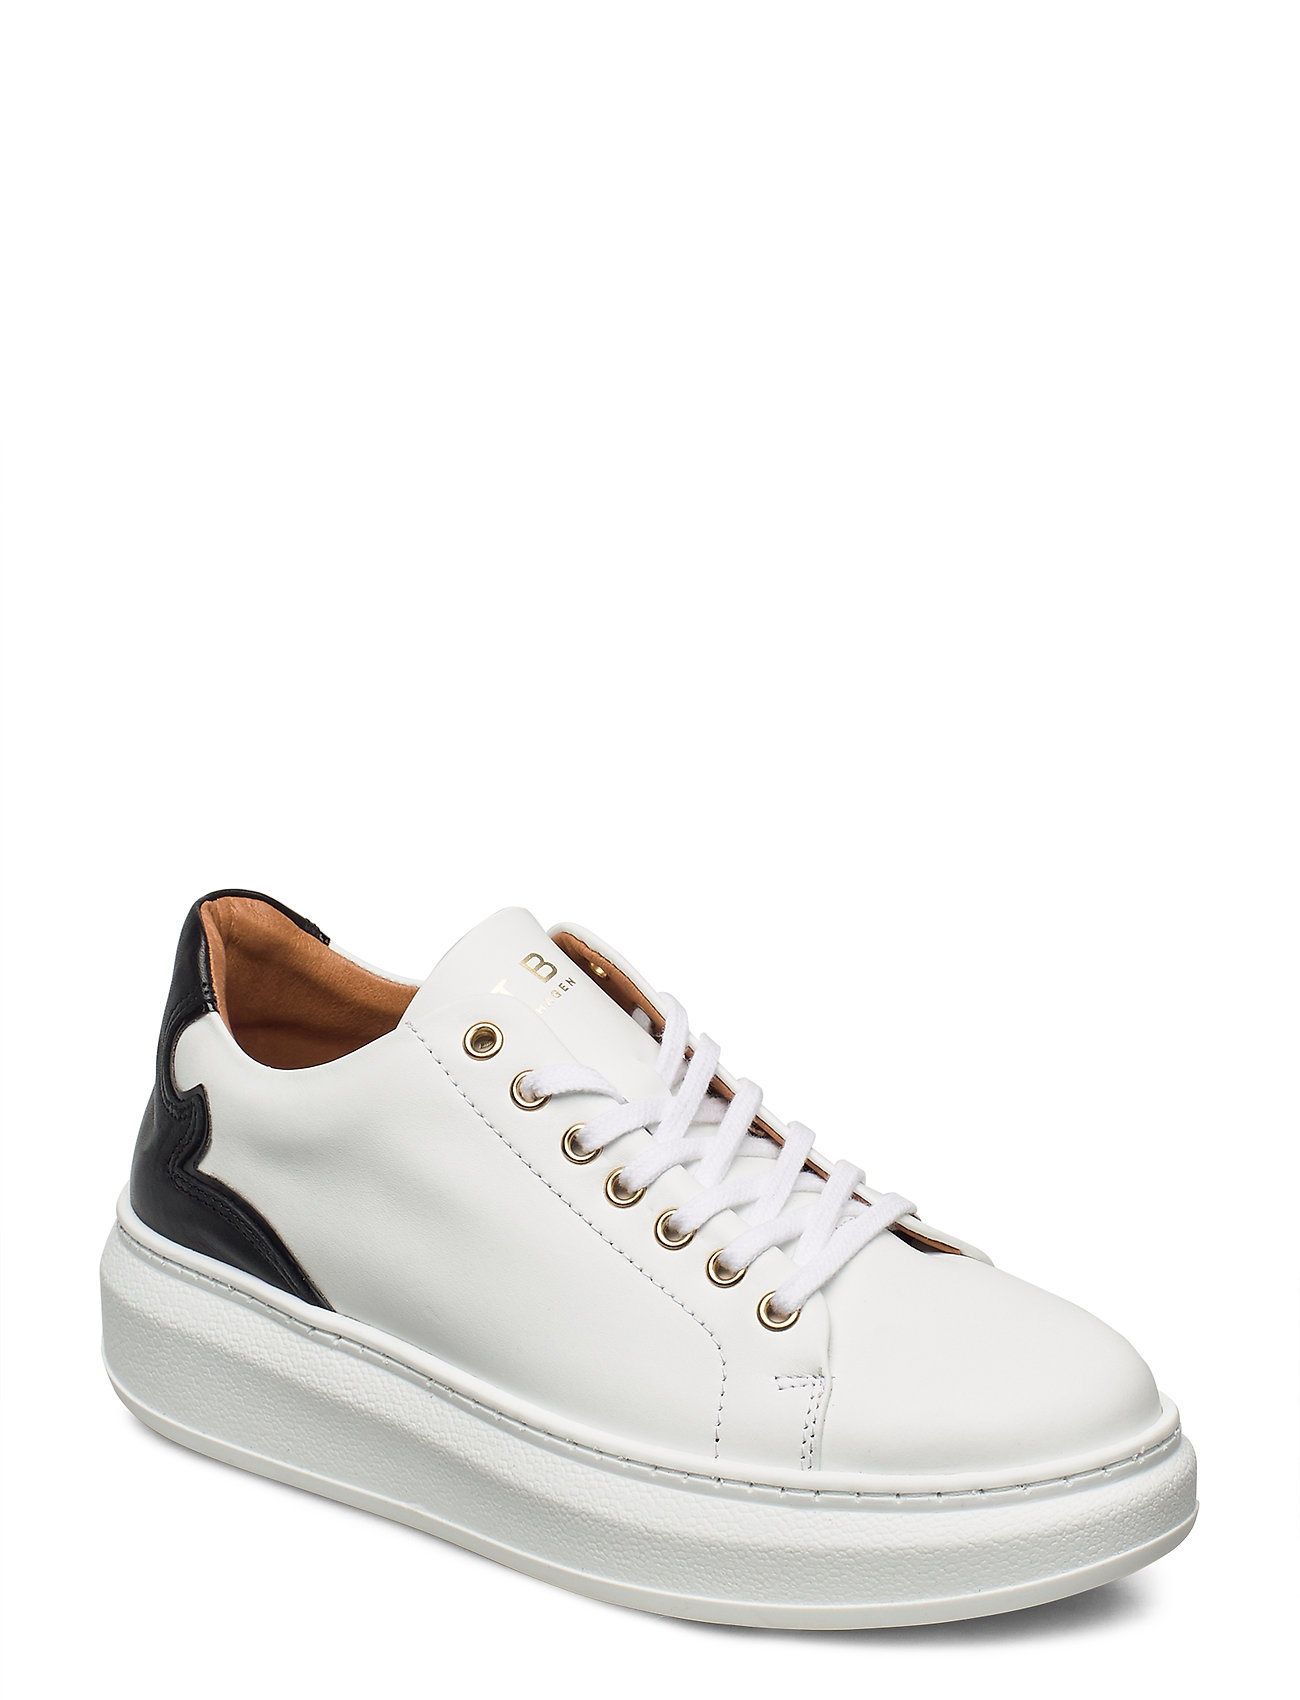 Image of Stb-Adina L Low-top Sneakers Hvid Shoe The Bear (3440758781)